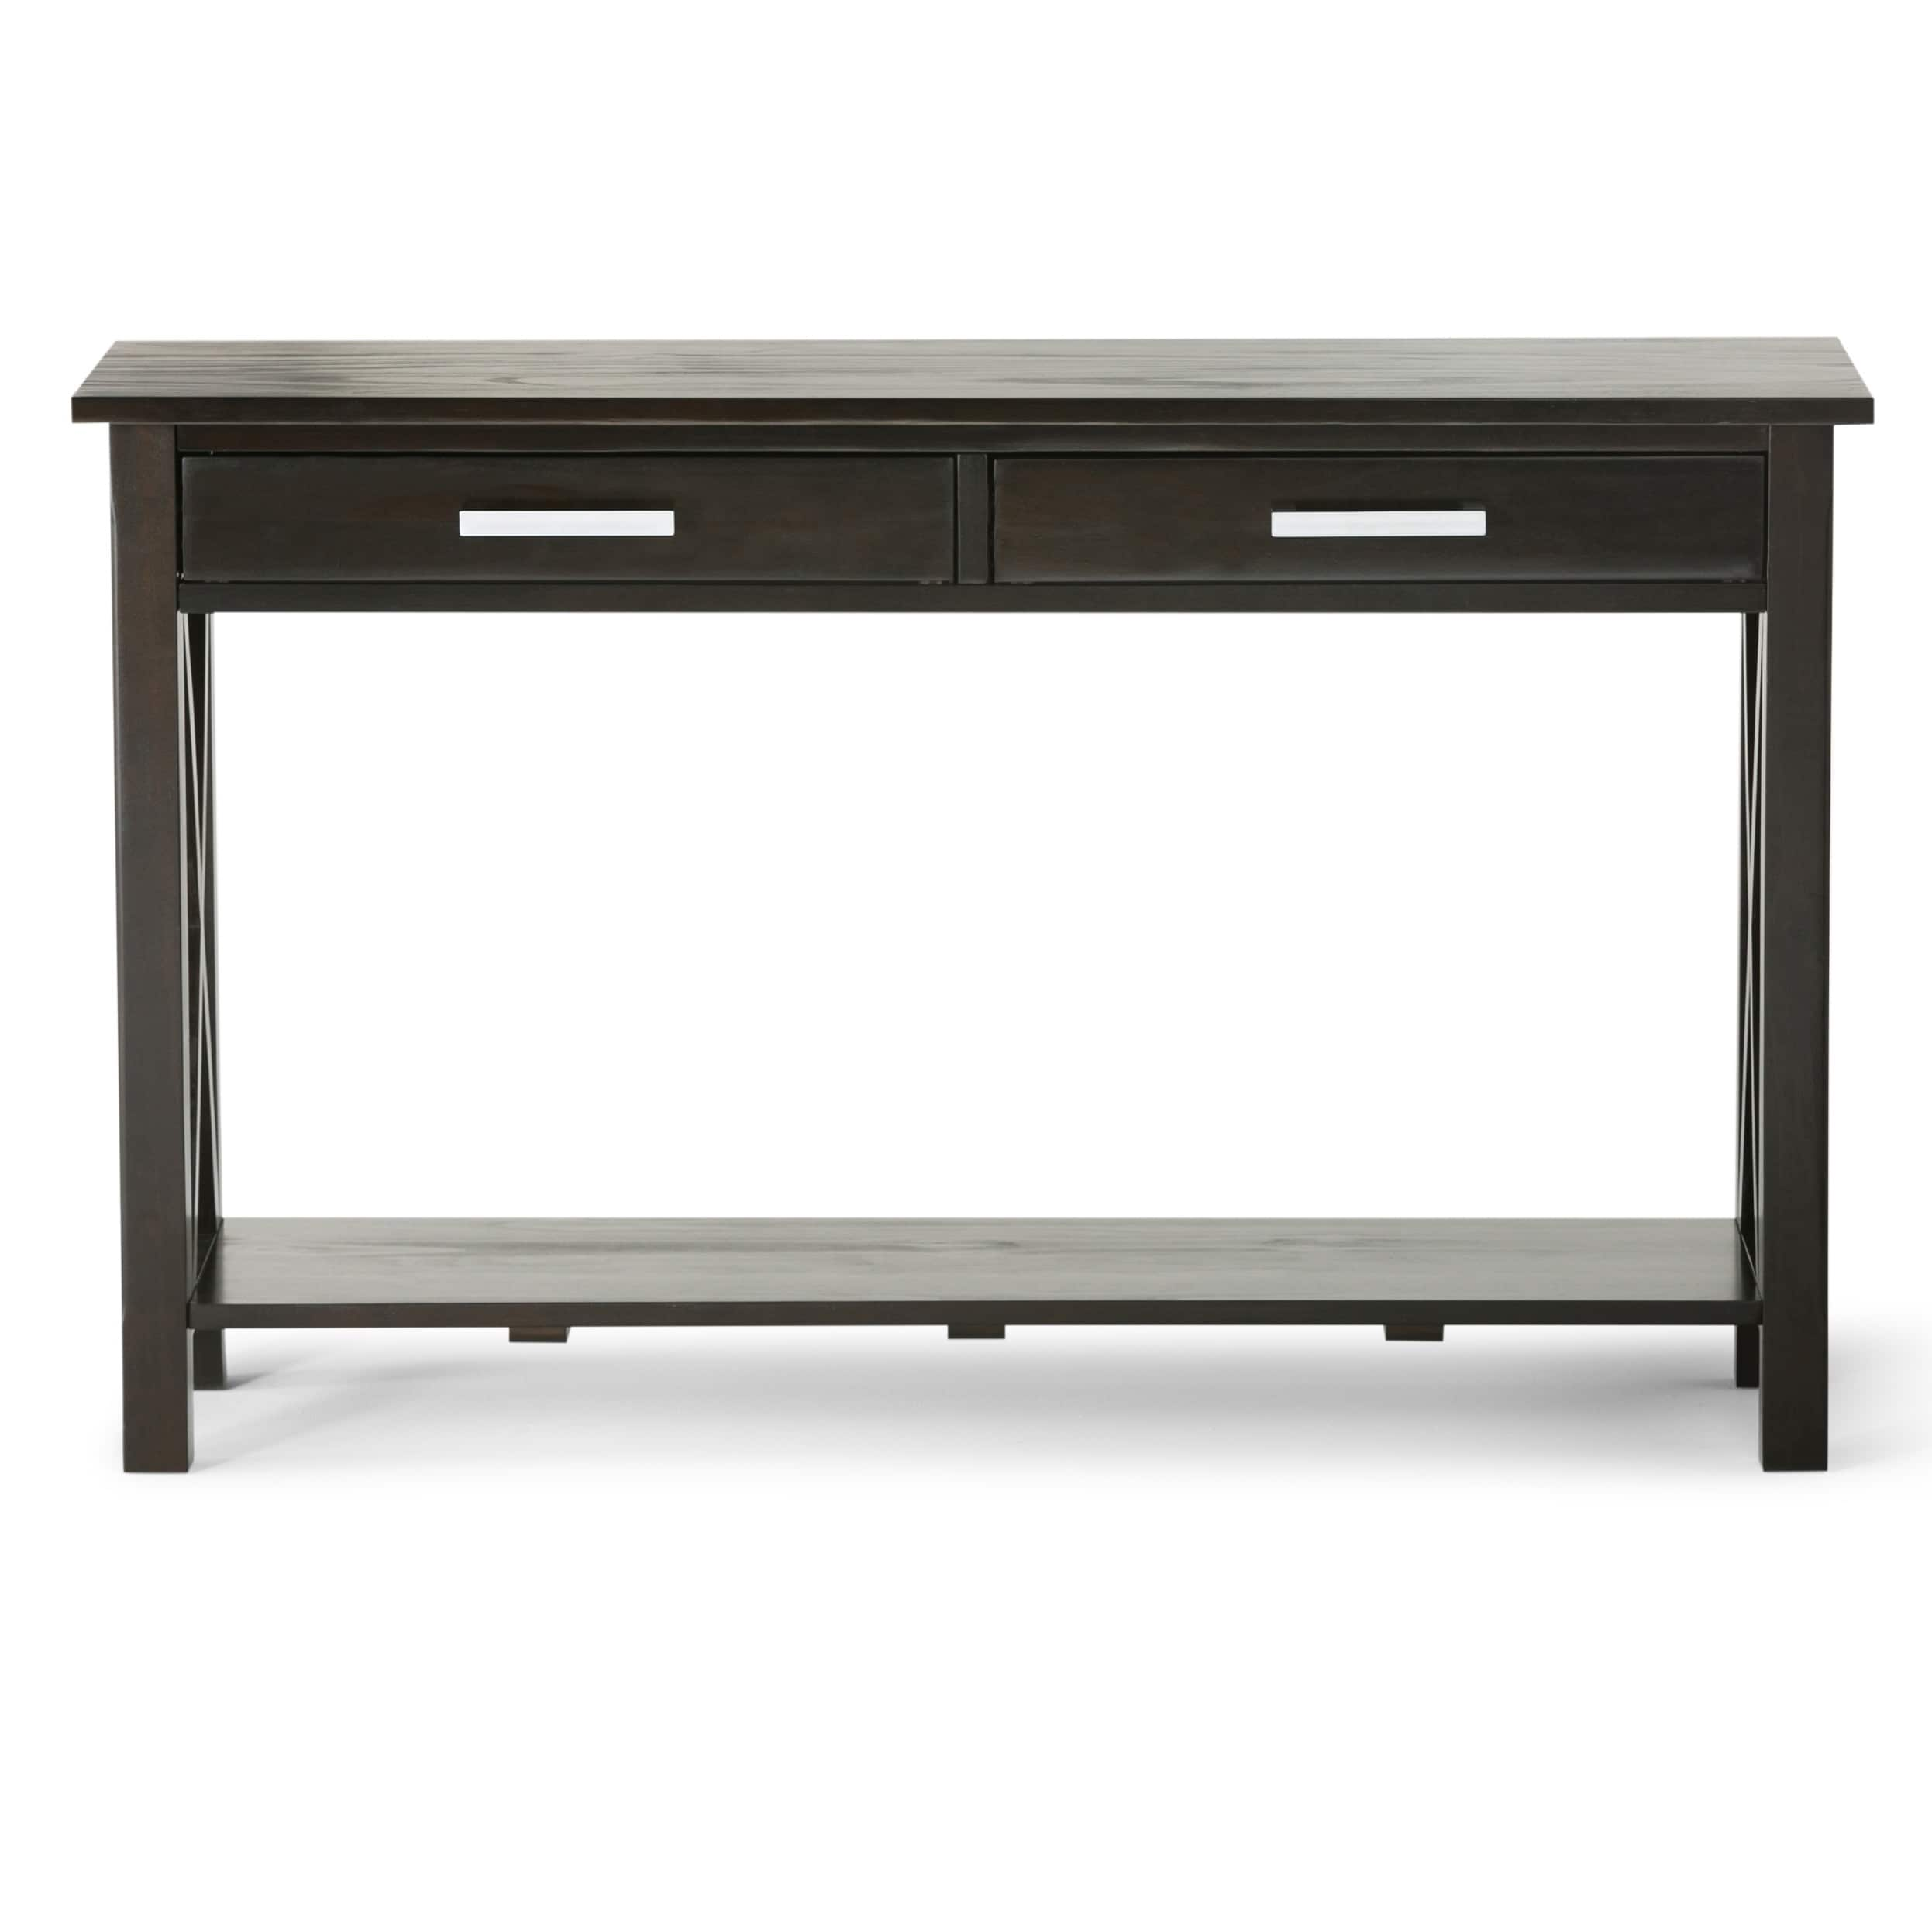 WyndenHall Waterloo Dark Walnut Stained Pine 2 Drawer Console Sofa Table    Free Shipping Today   Overstock   16270682